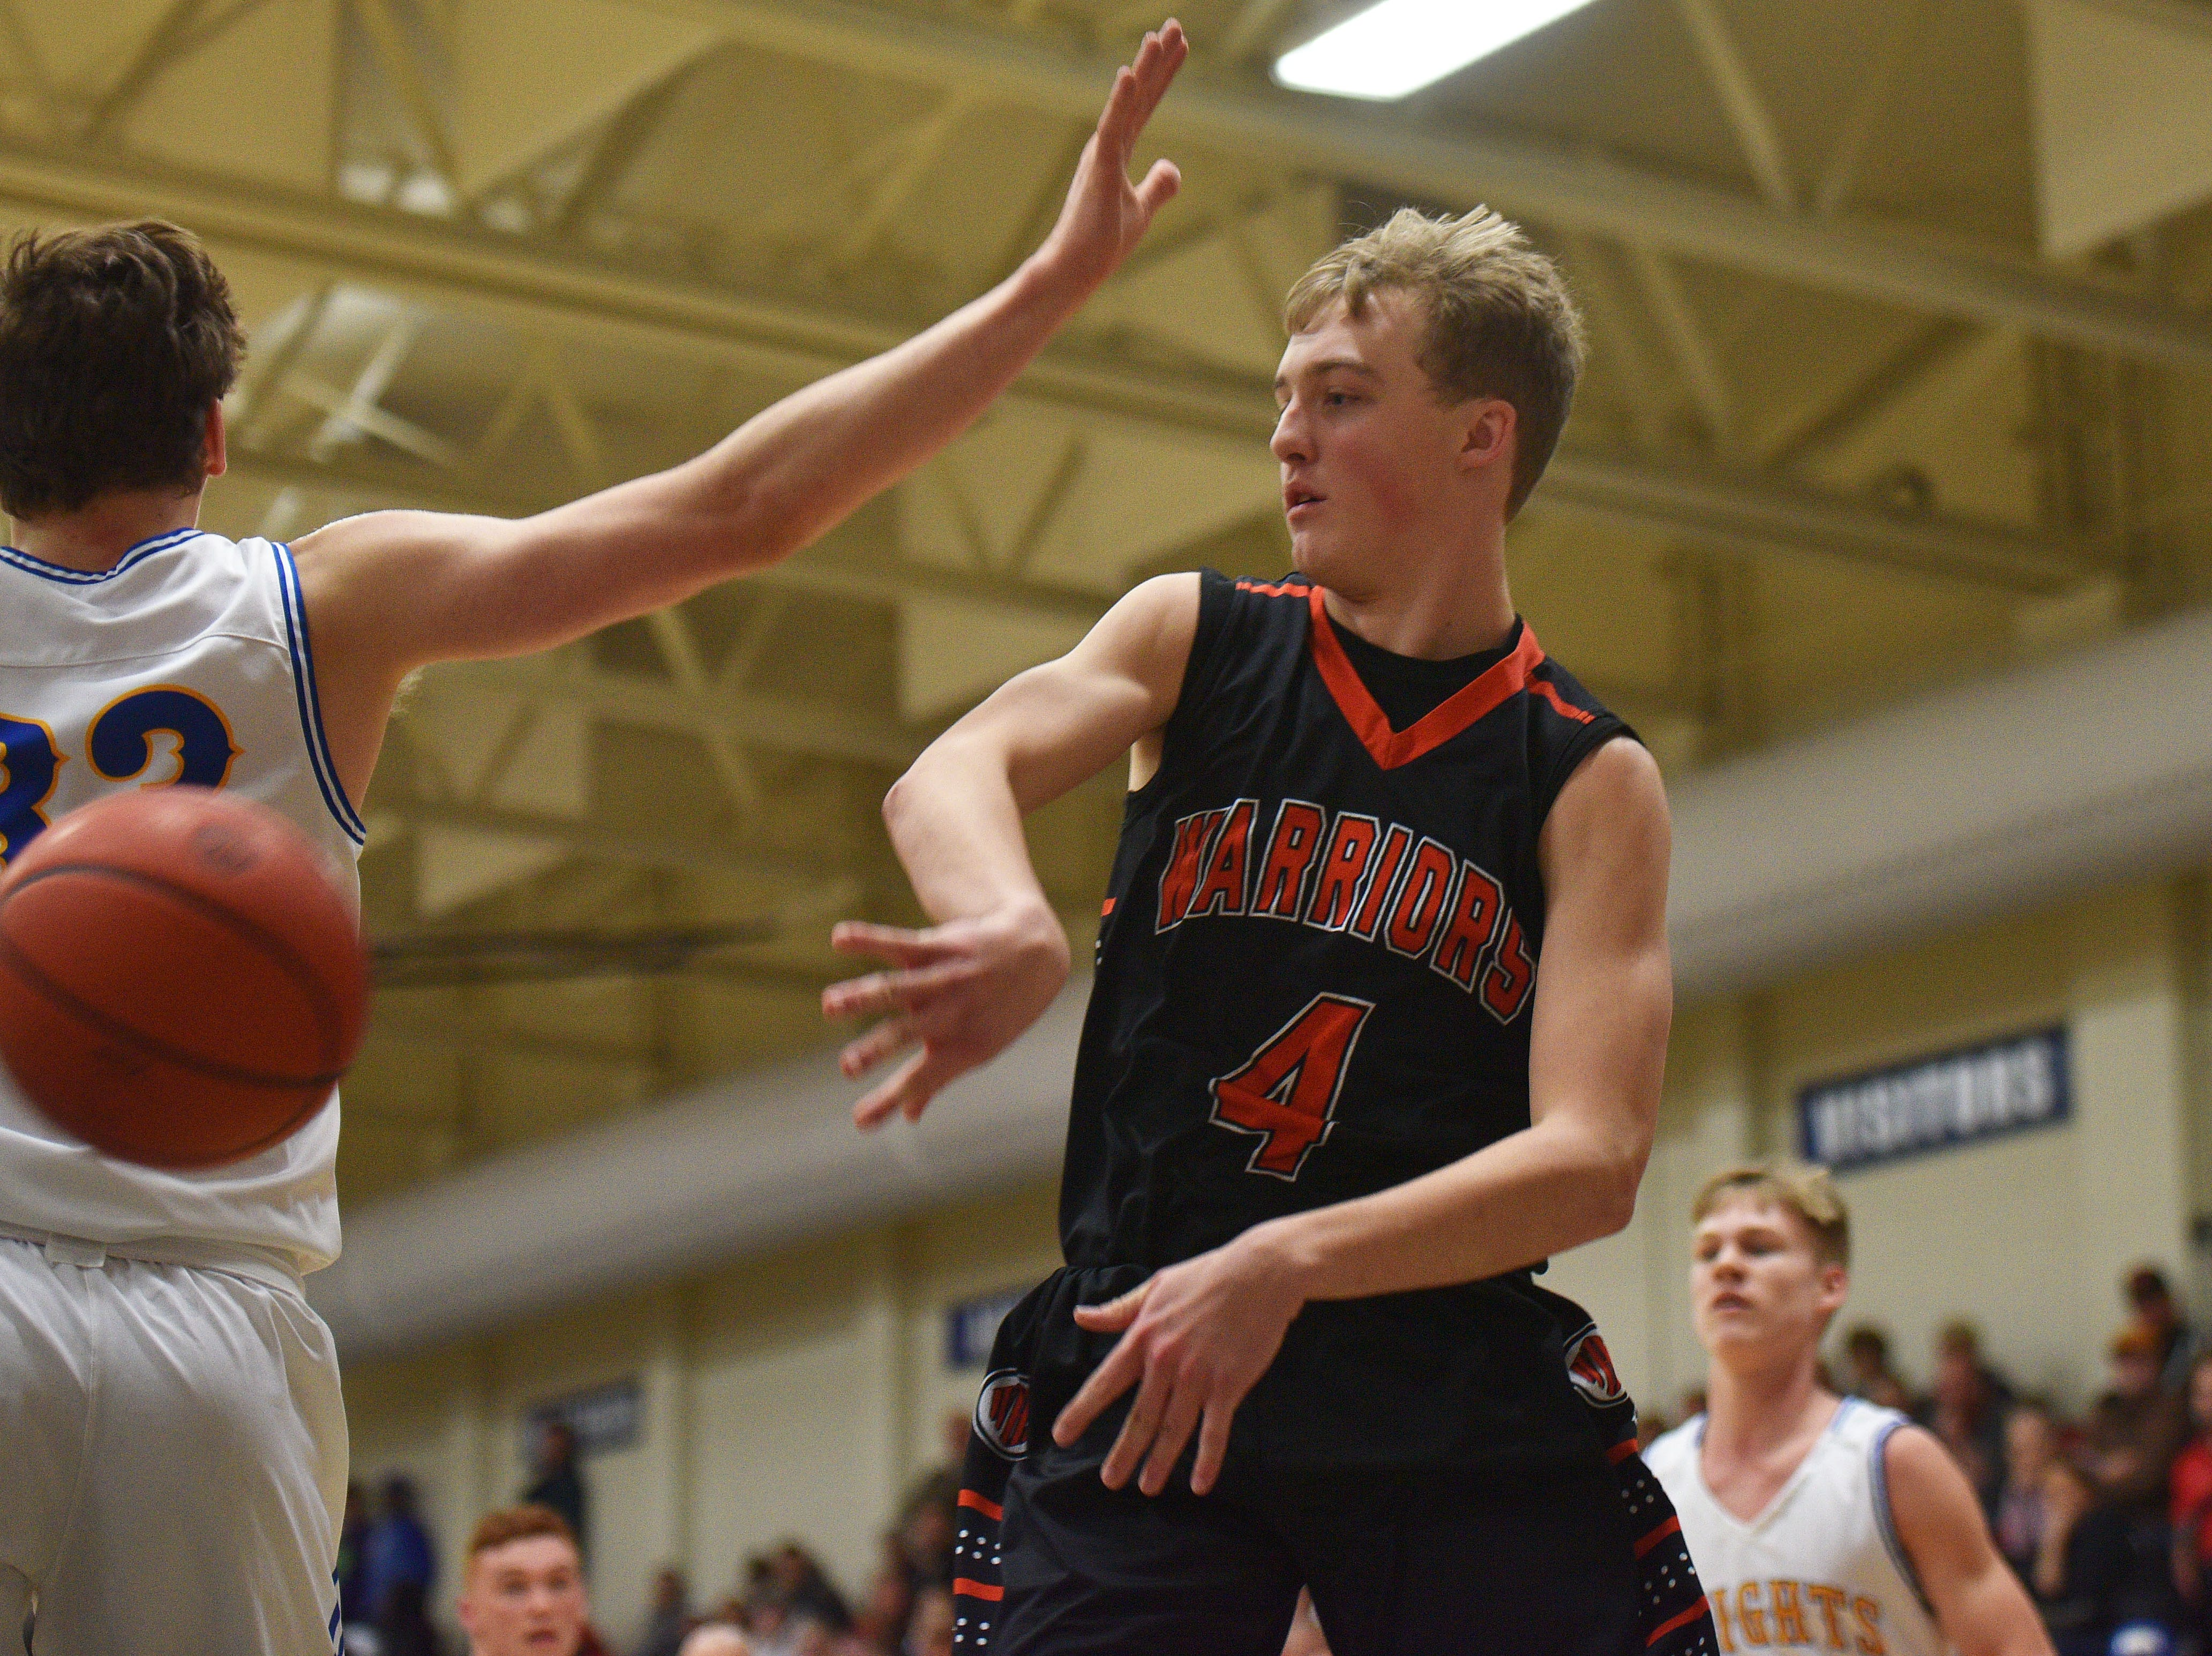 Washington's Dagen Schramm goes against O'Gorman during the game Thursday, Jan. 10, at O'Gorman in Sioux Falls.